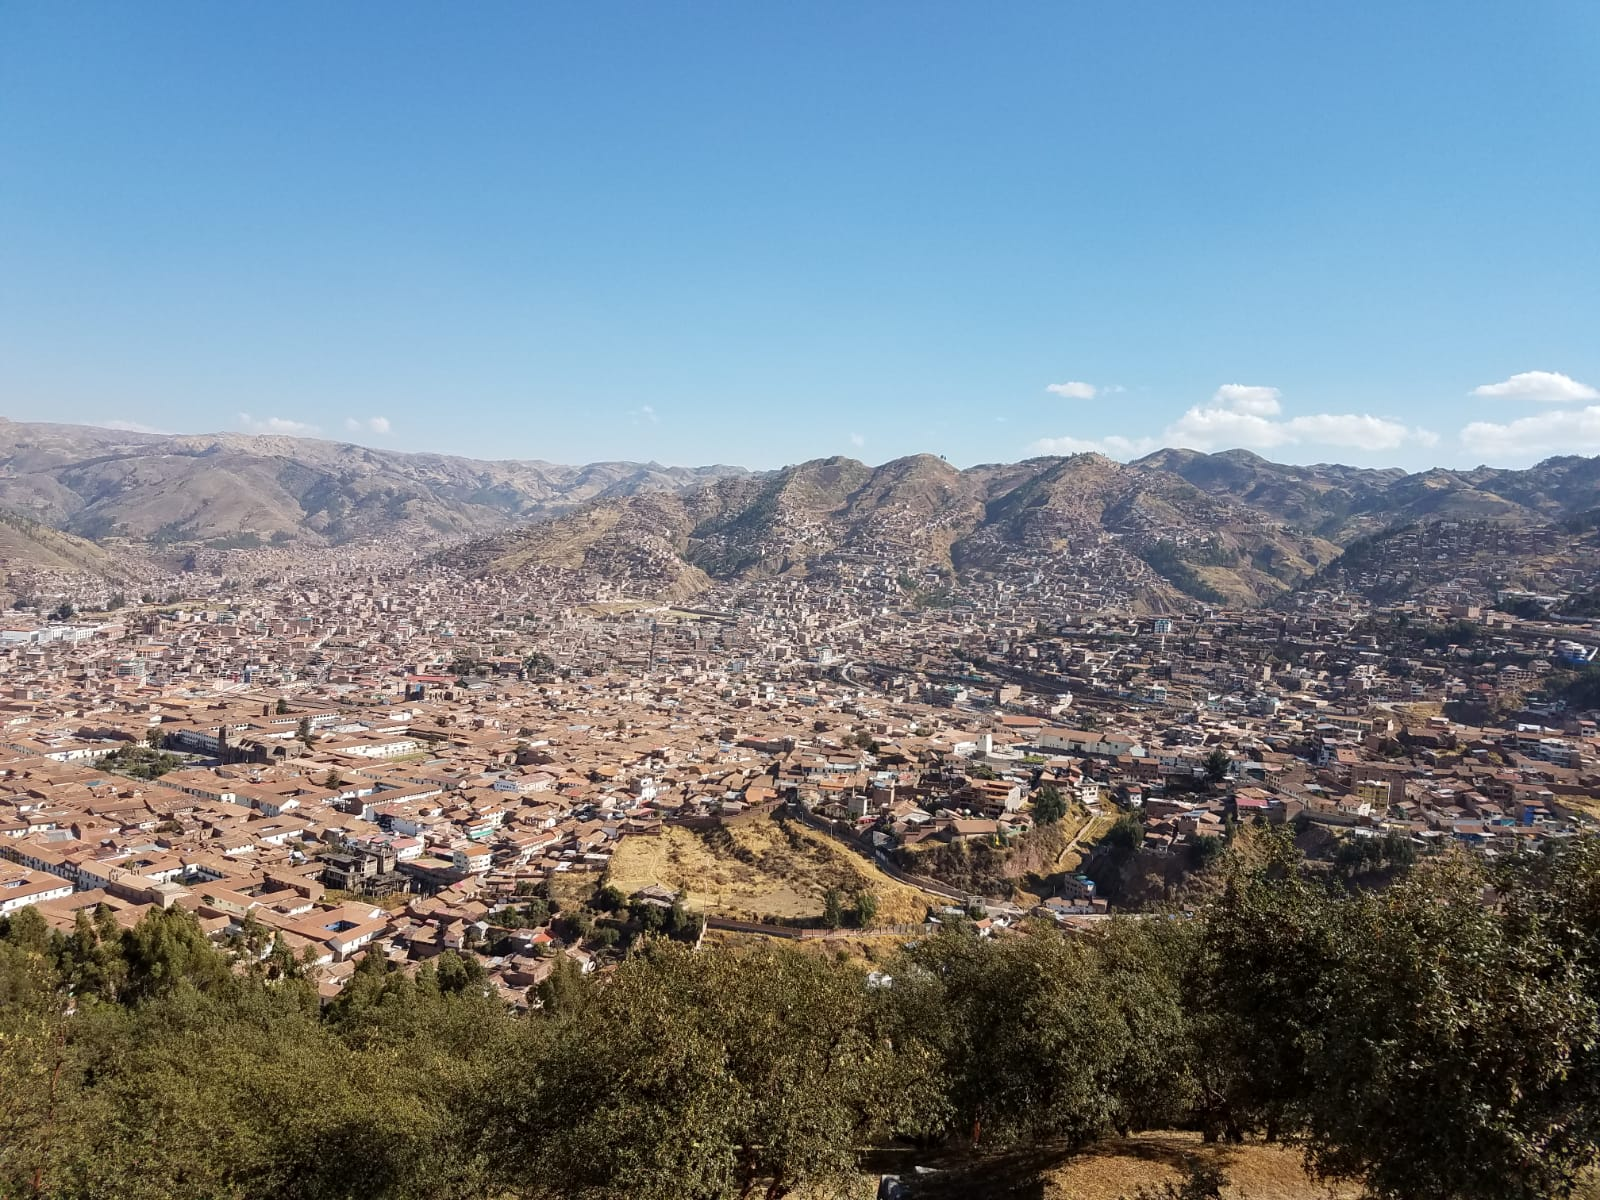 Looking over the city of Cusco from Saqsayhuaman